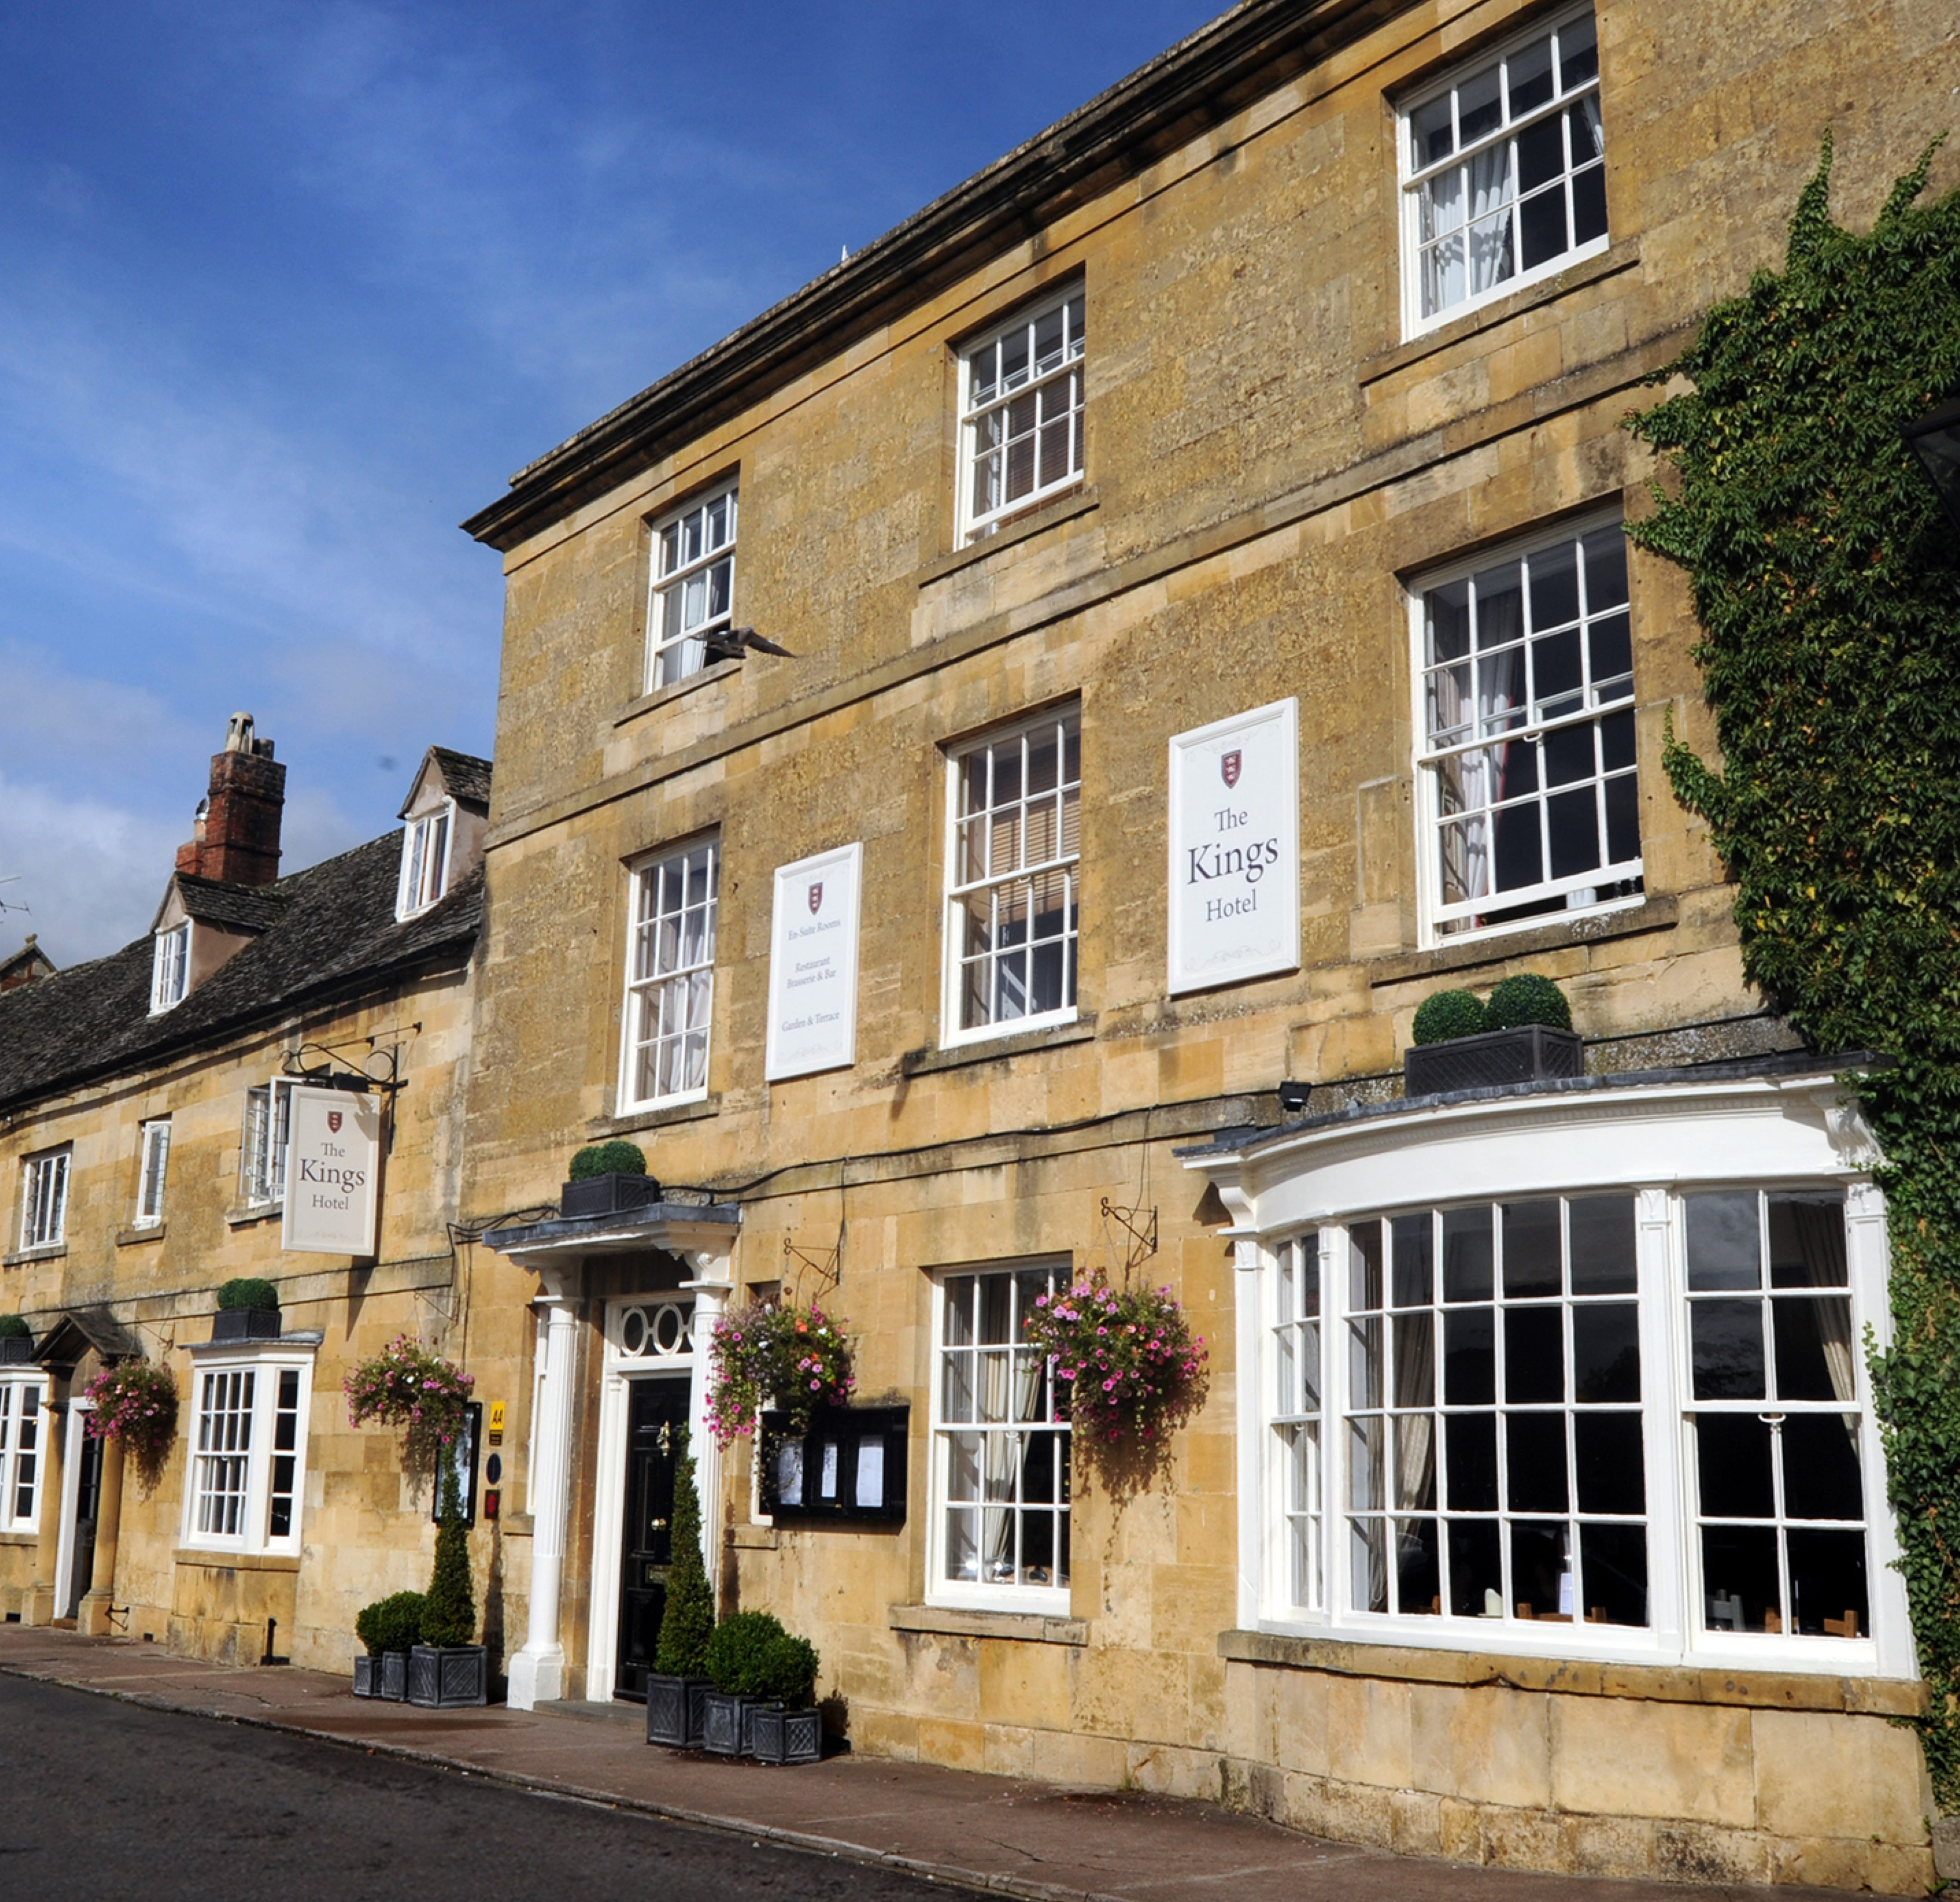 Choose to visit The Kings Hotel in the Cotswolds as part of the Eden Hotel Collection.